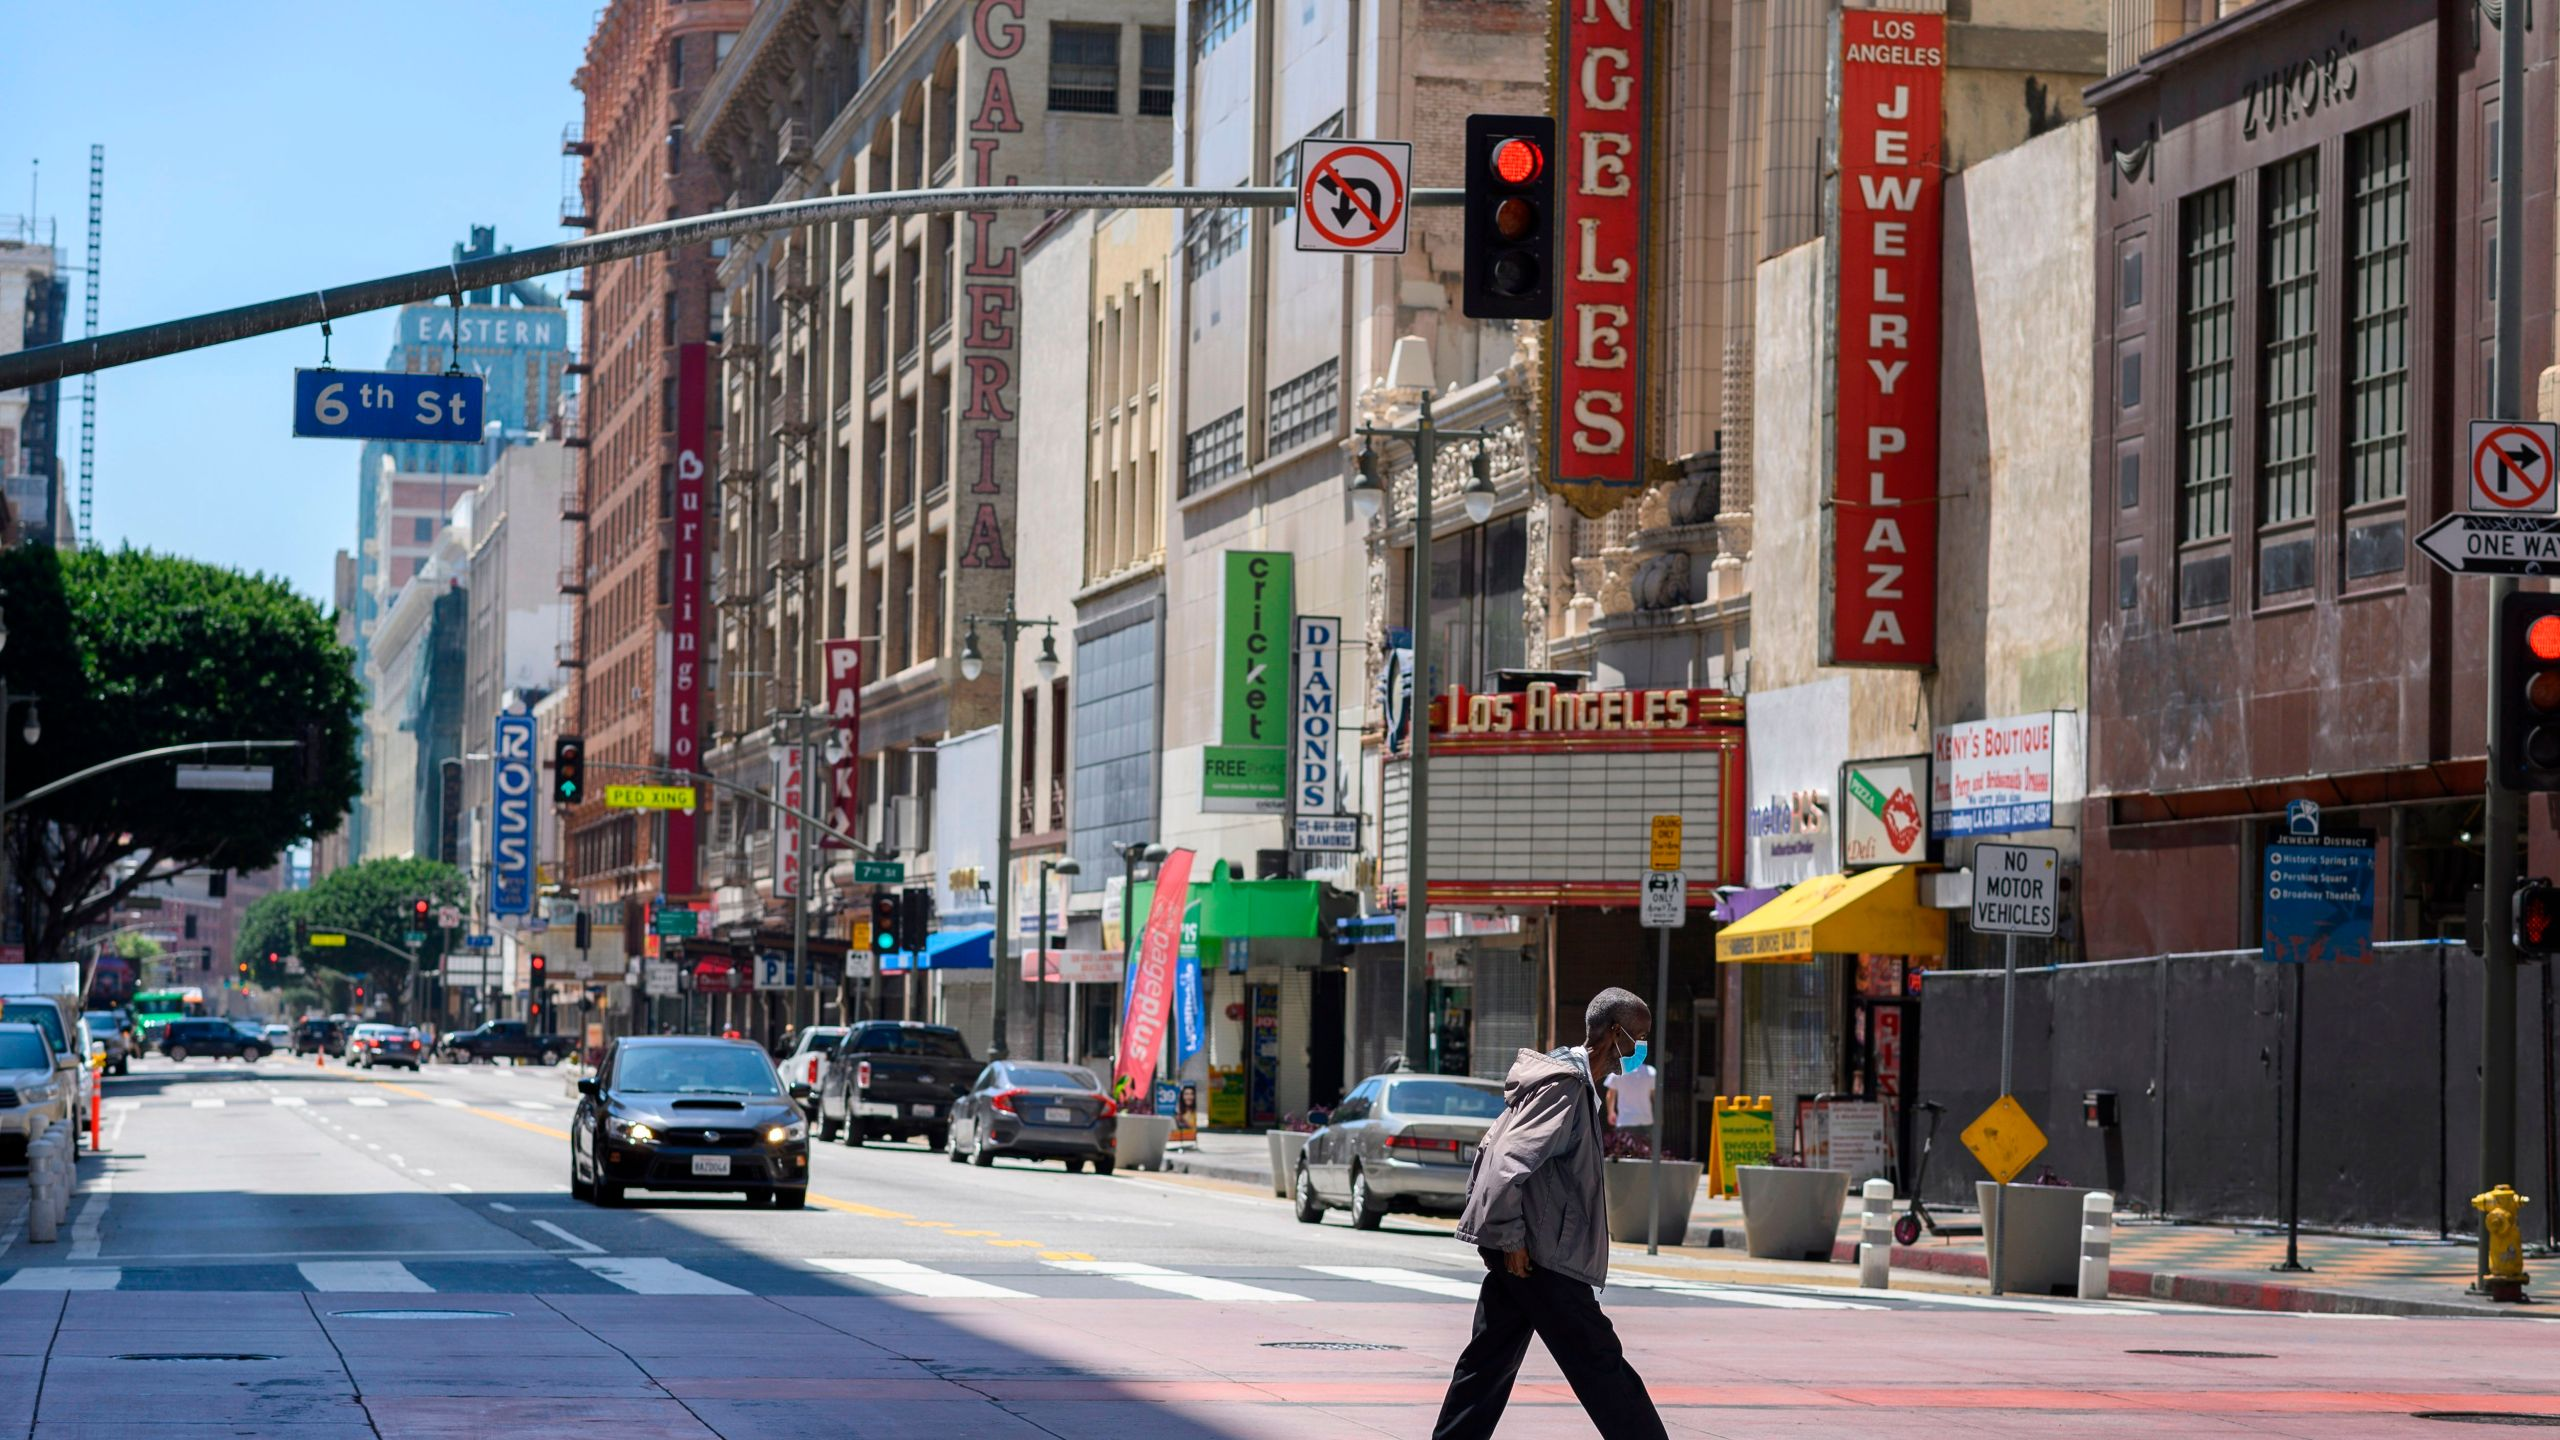 A pedestrian crosses a street in downtown Los Angeles during the coronavirus pandemic on April 14, 2020. (Credit: Robyn Beck / AFP / Getty Images)